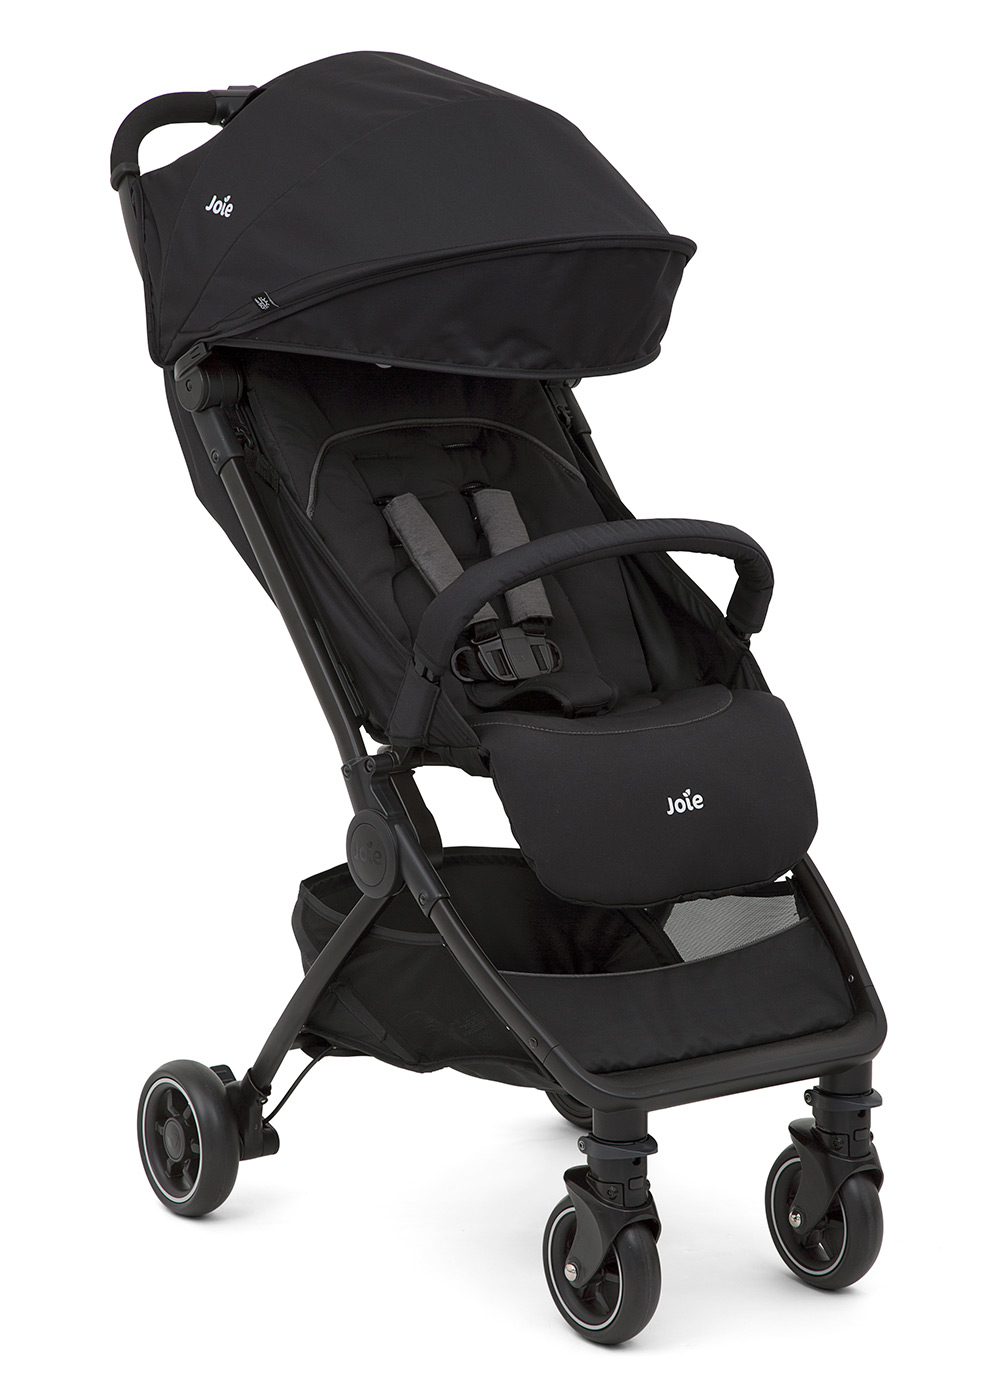 Compact Stroller Nz Pact Joie New Zealand Explore Joie